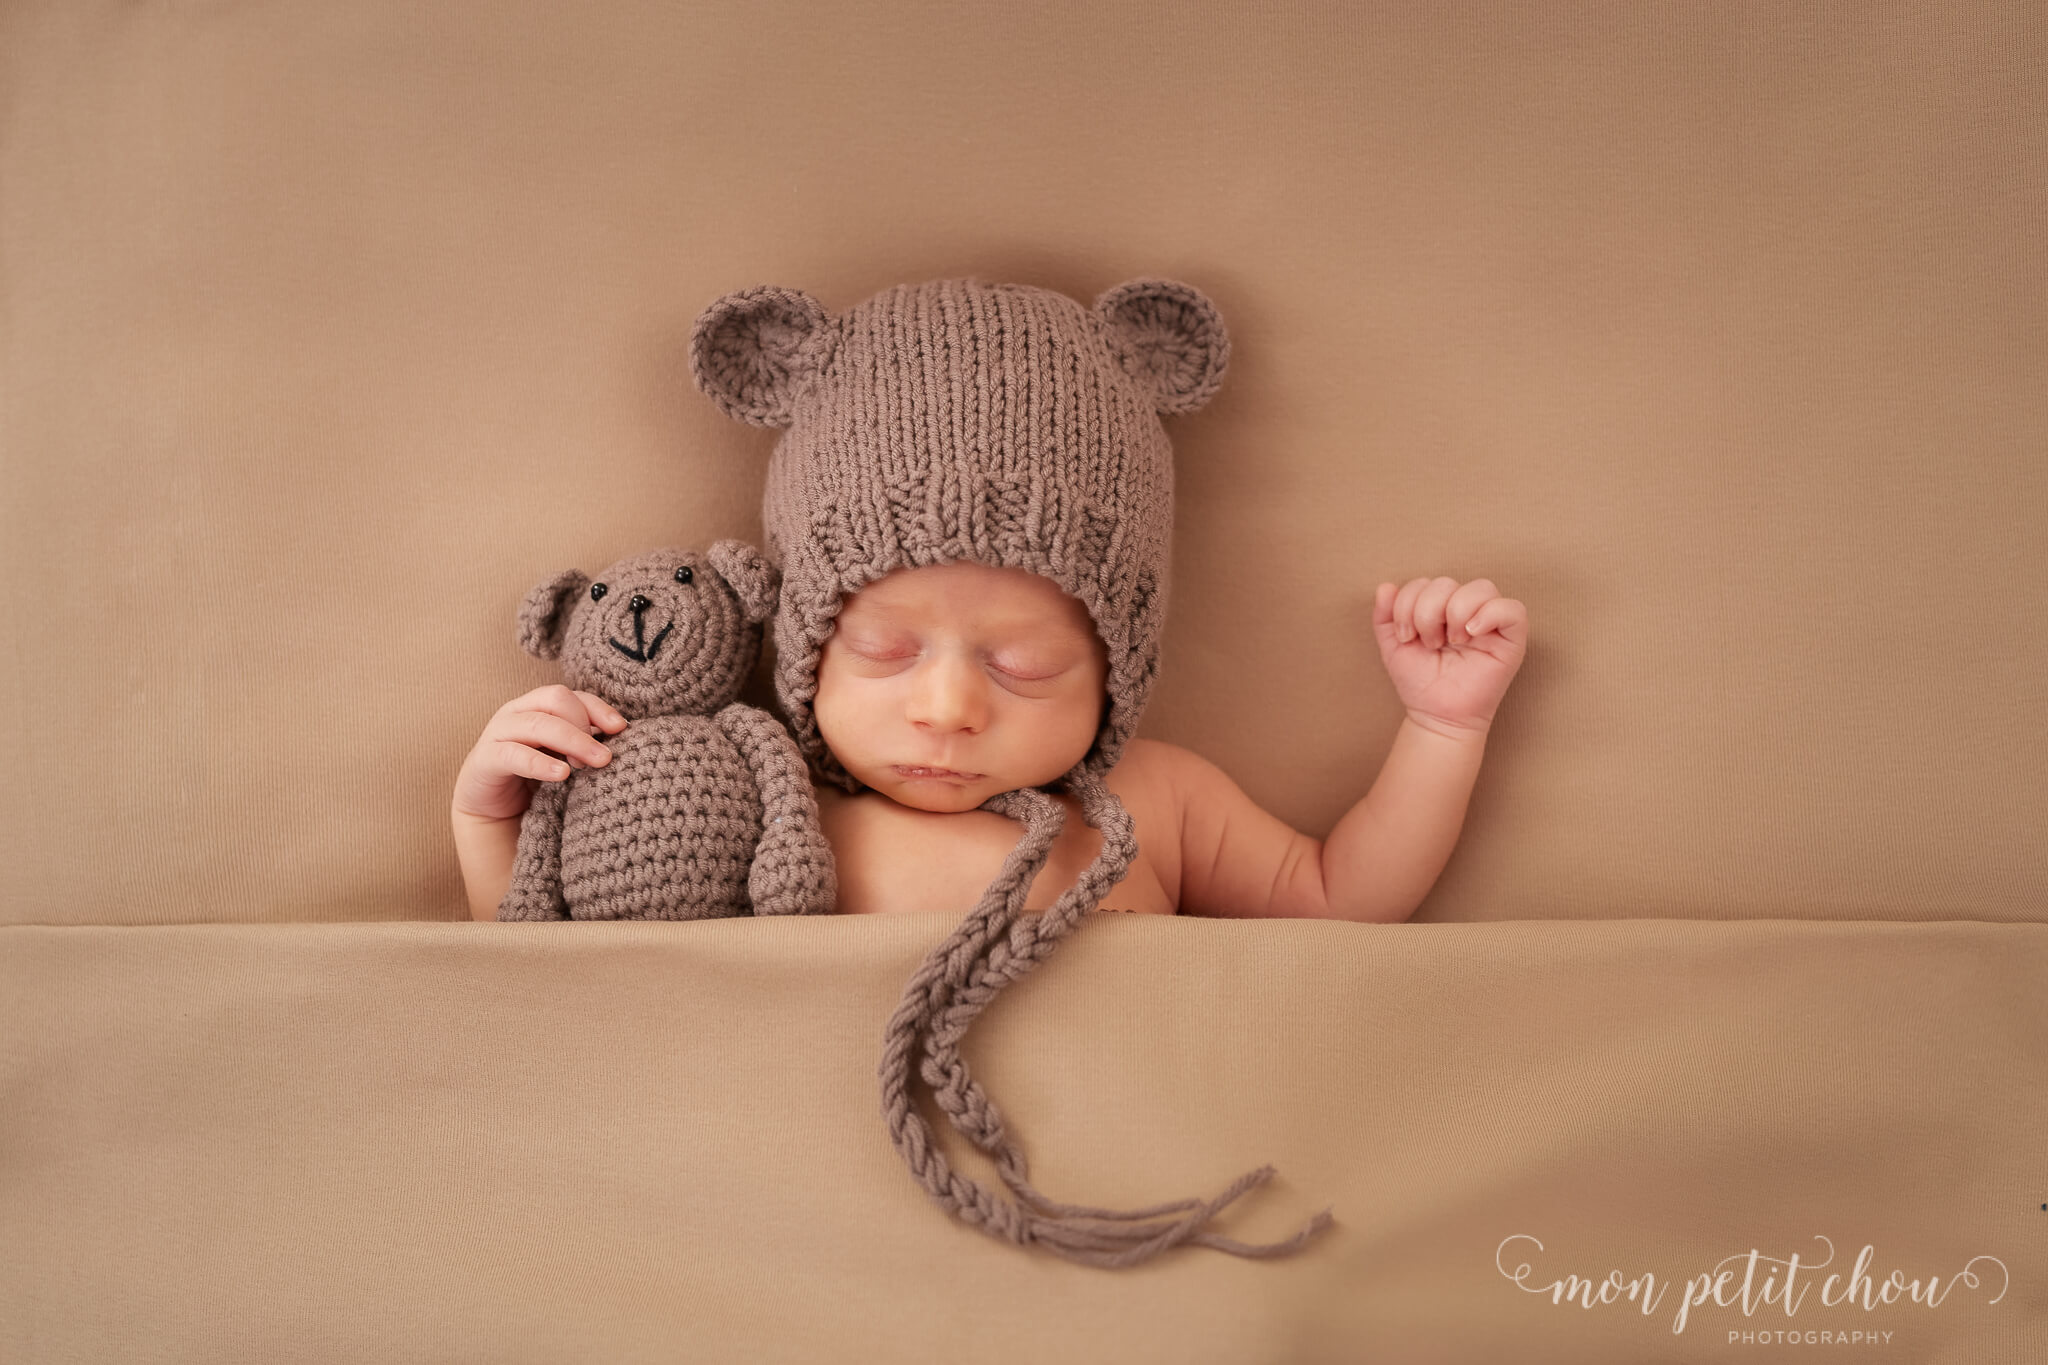 Baby boy hugging a knitted teddy wearing a bonnet with ears.